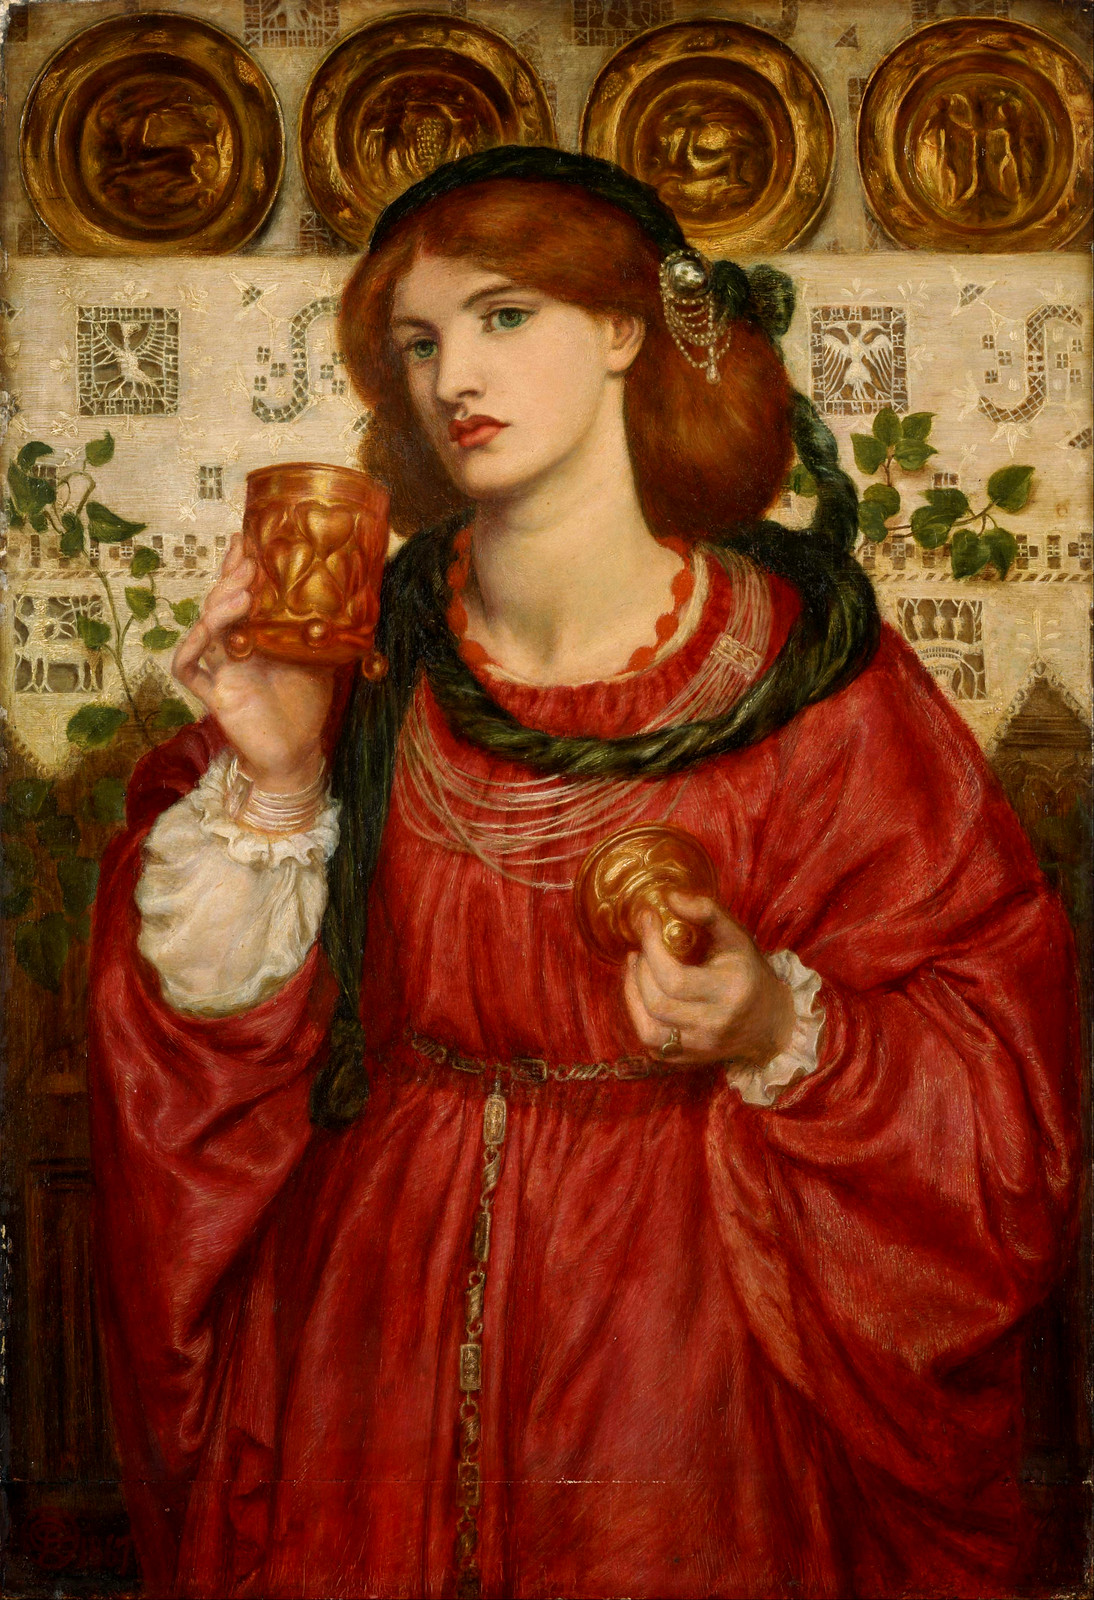 The Loving Cup by Dante Gabriel Rossetti, 1867